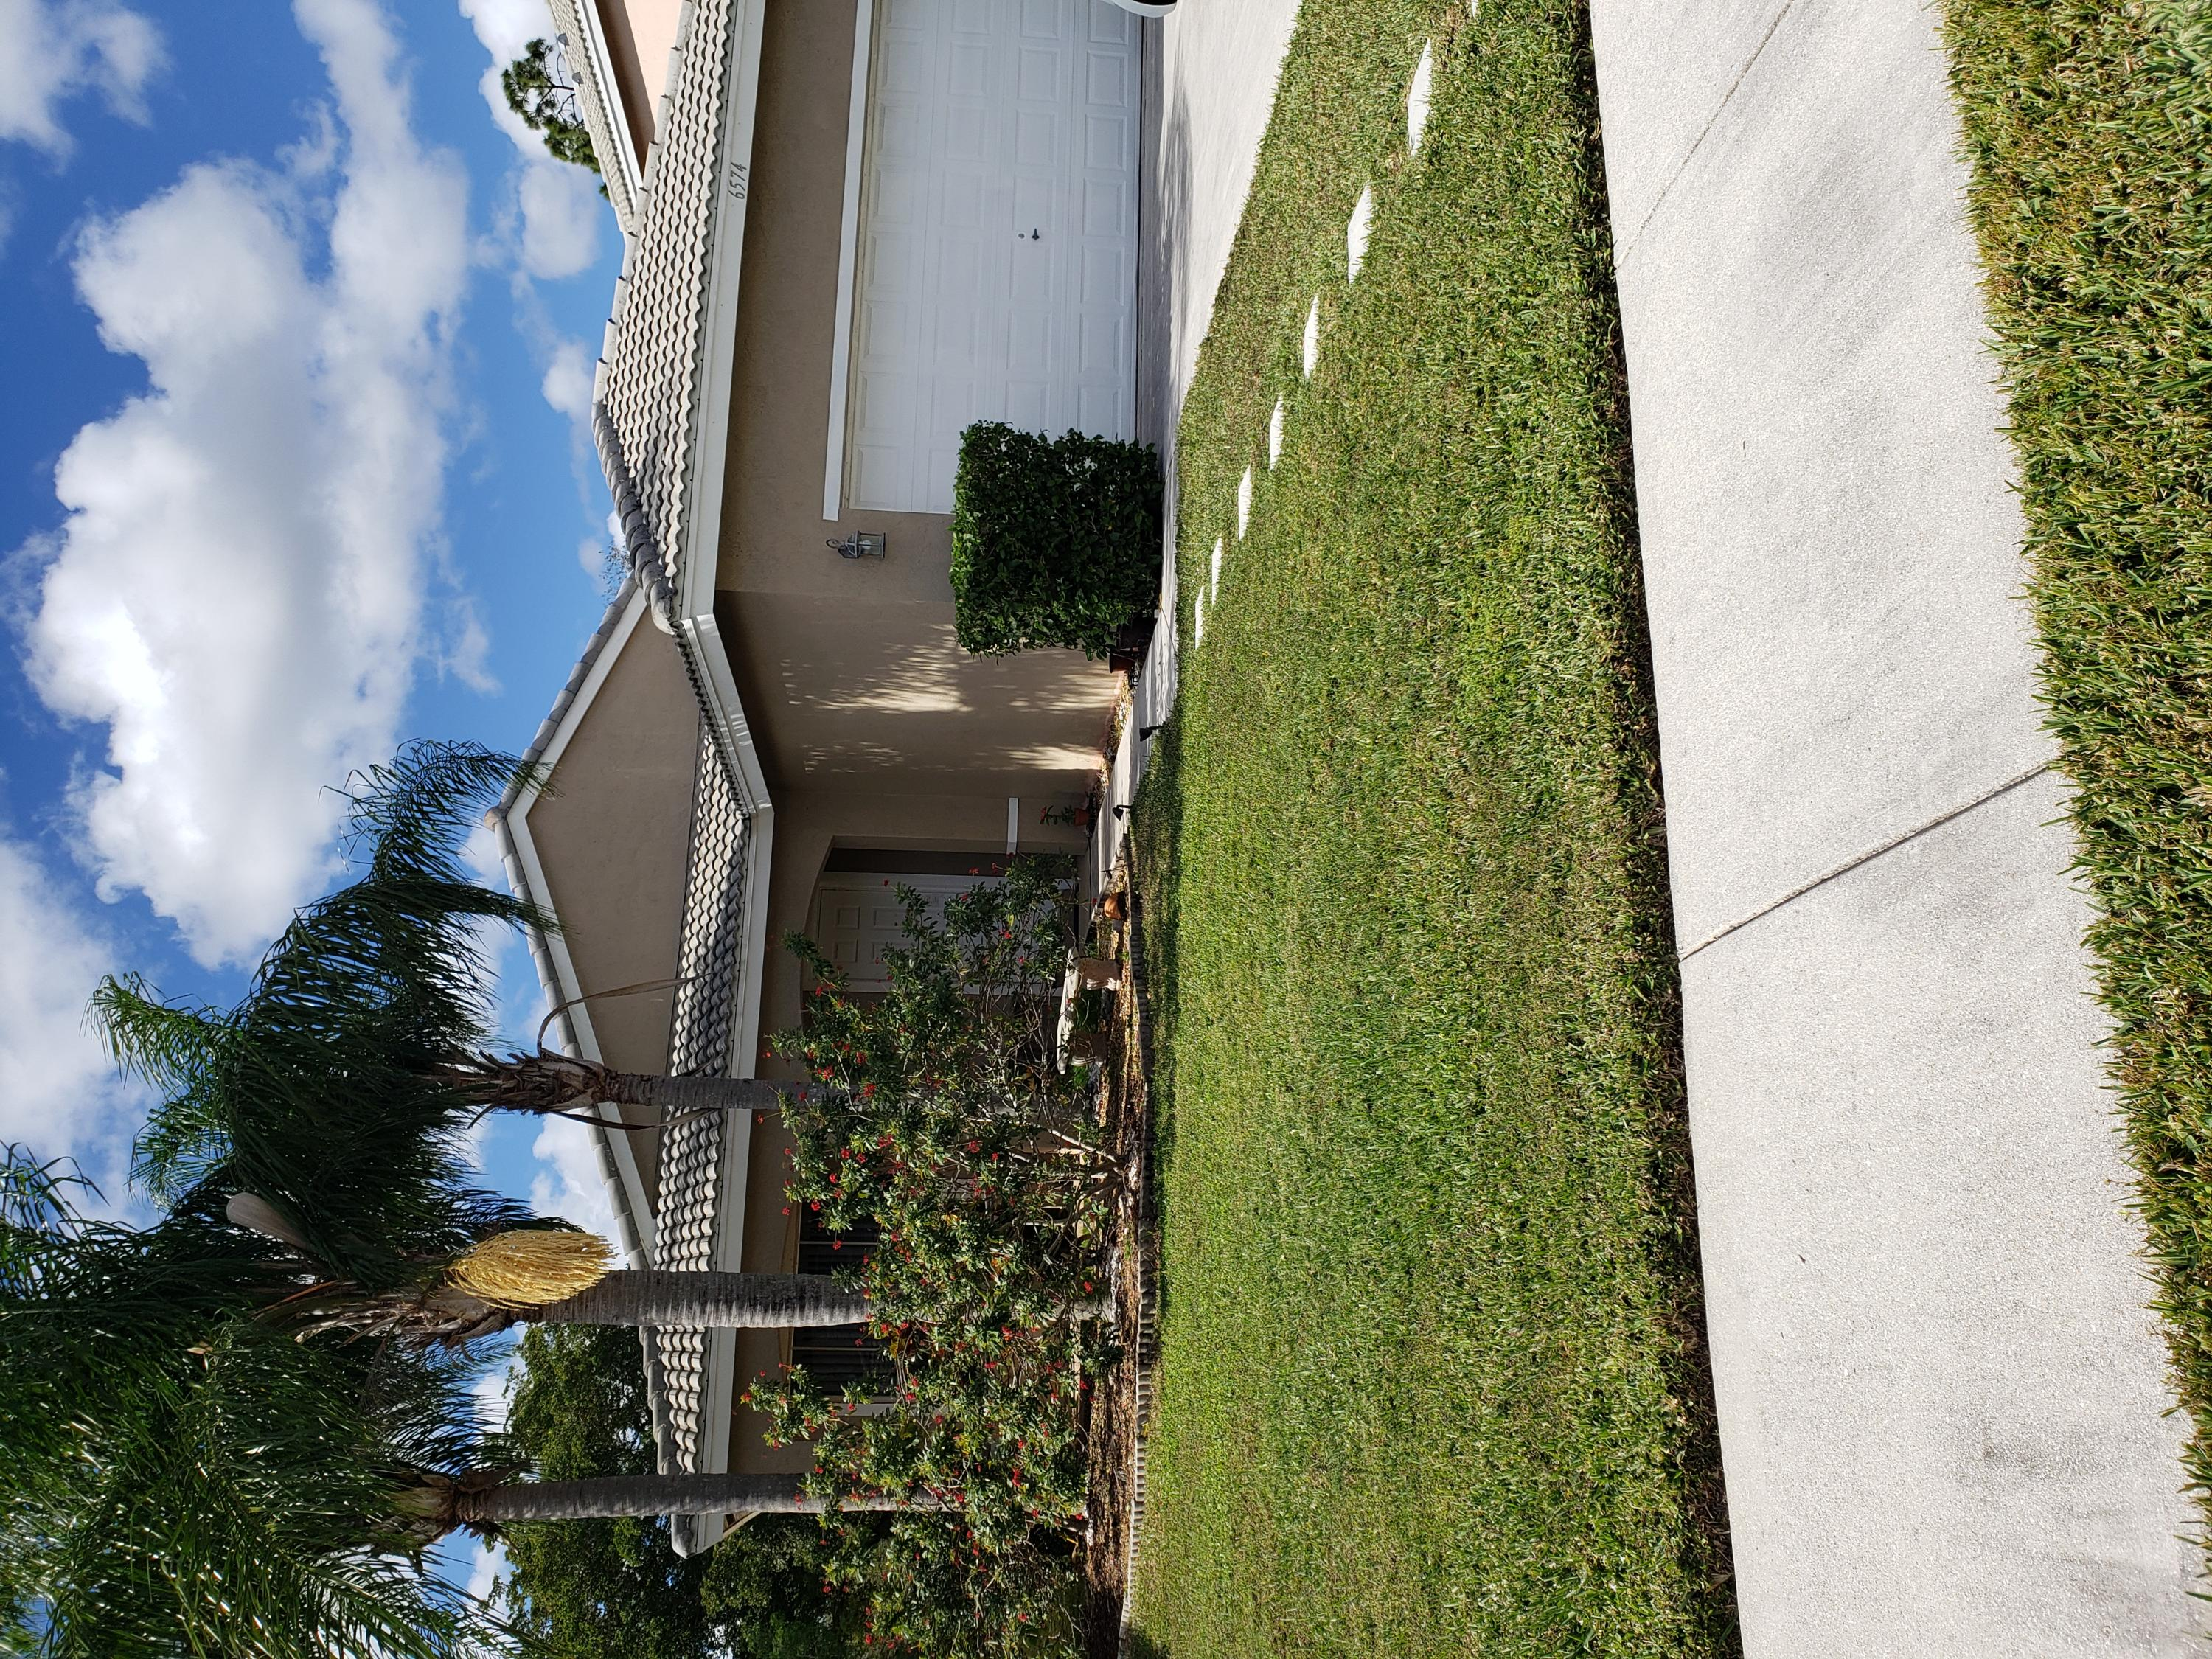 Home for sale in Dillman Farms Greenacres Florida